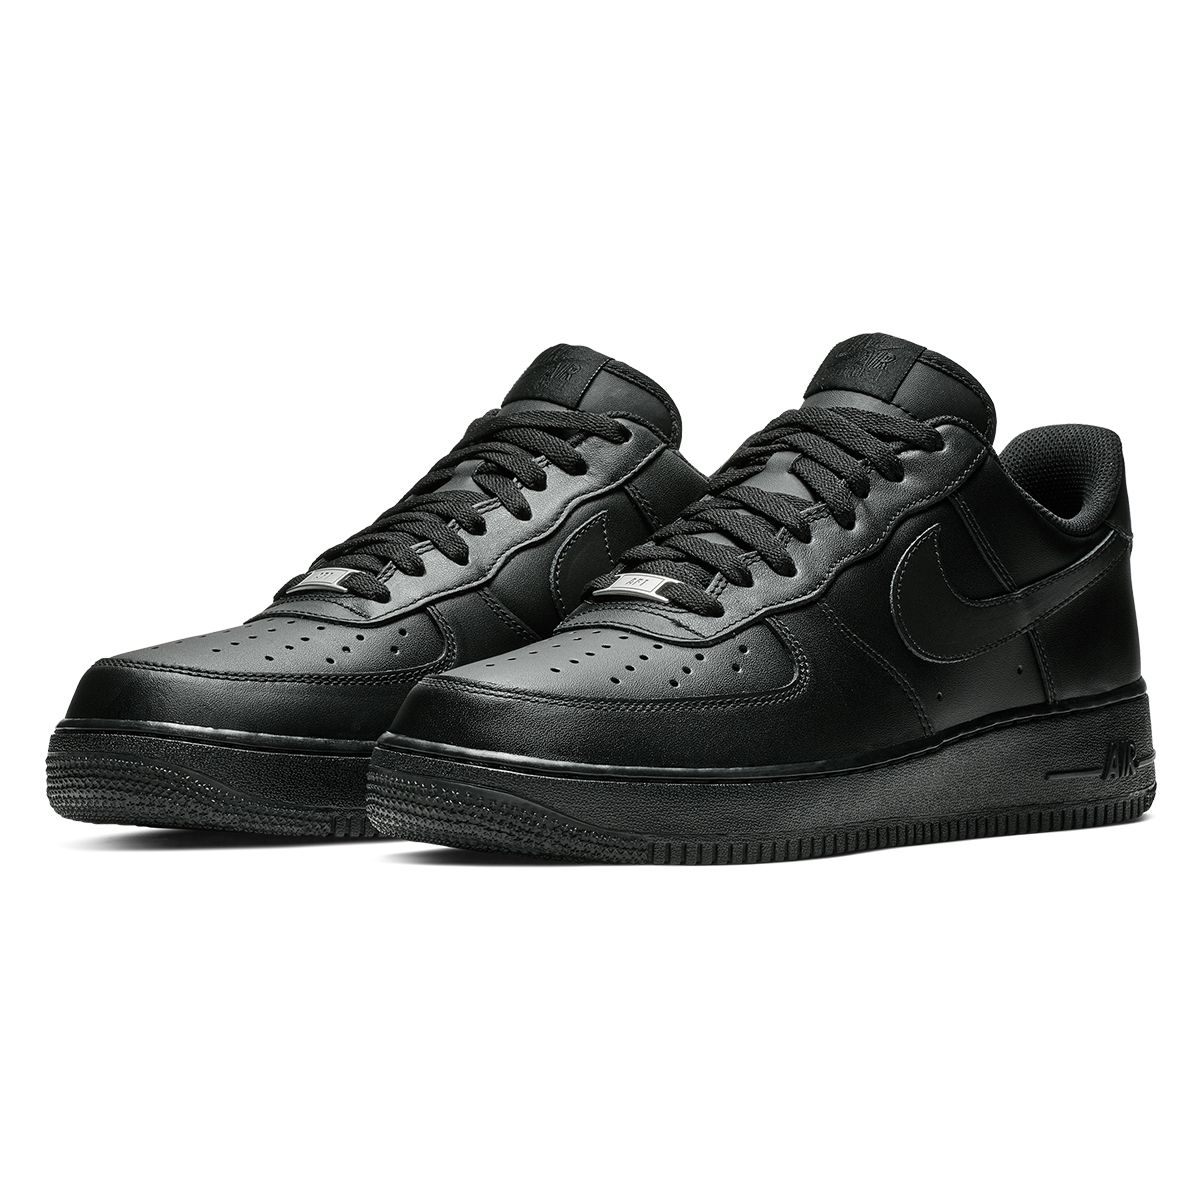 NIKE AIR FORCE 1 '07 / 001:BLACK-BLACK